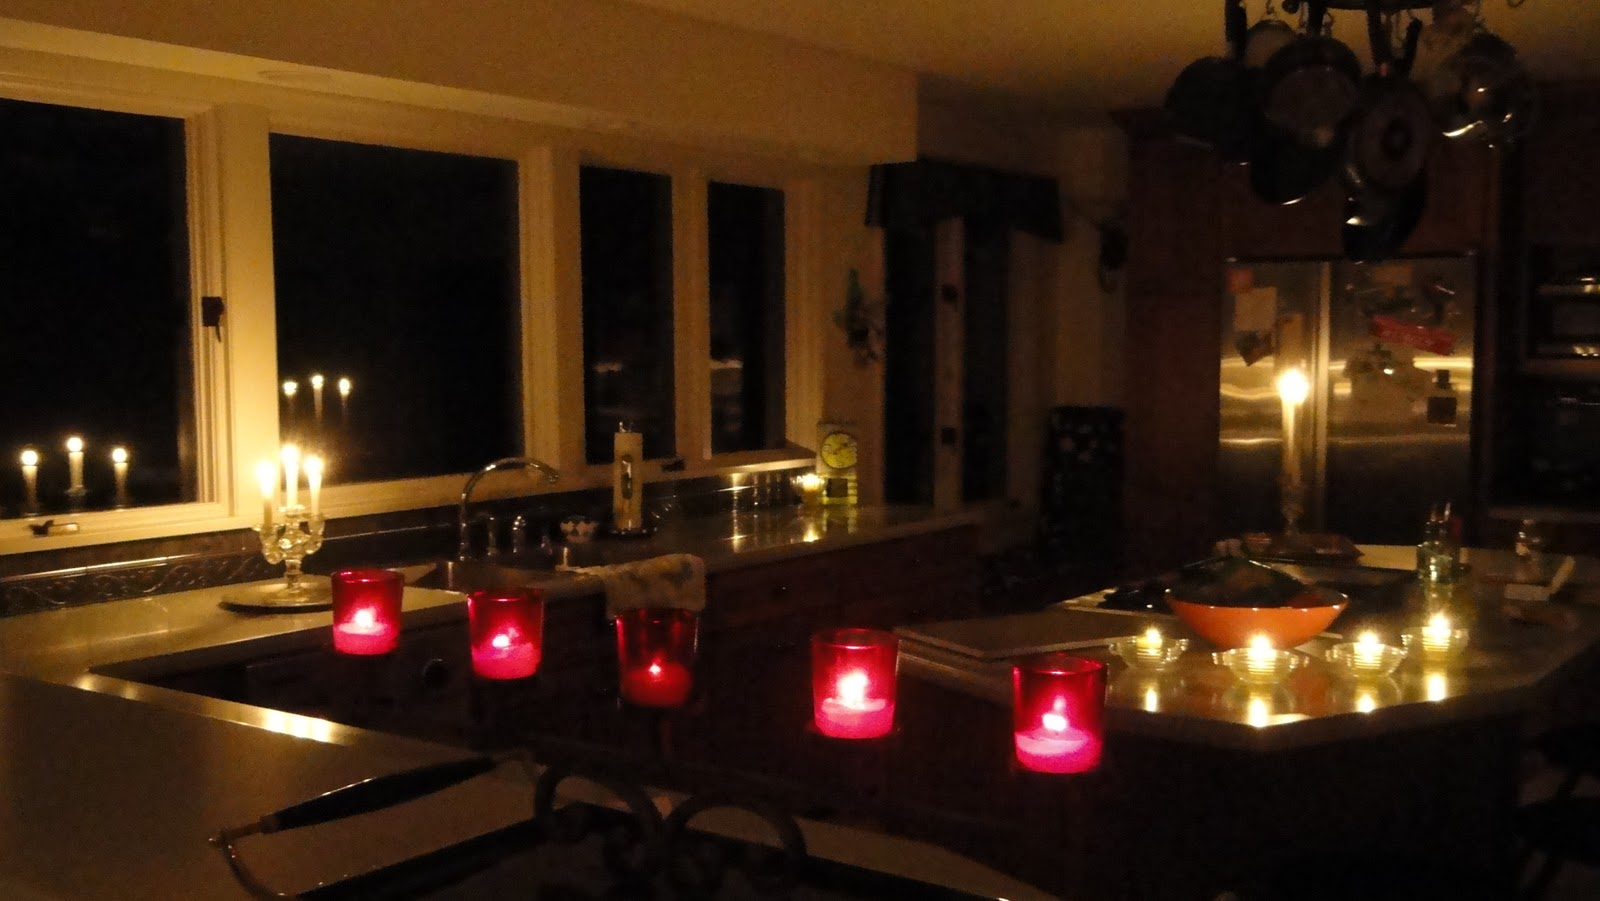 Once All Of The Votives And Tapers Were Lit, I Stood There, Amid The  Flickering And Rippling Glow Of Candle Flames.